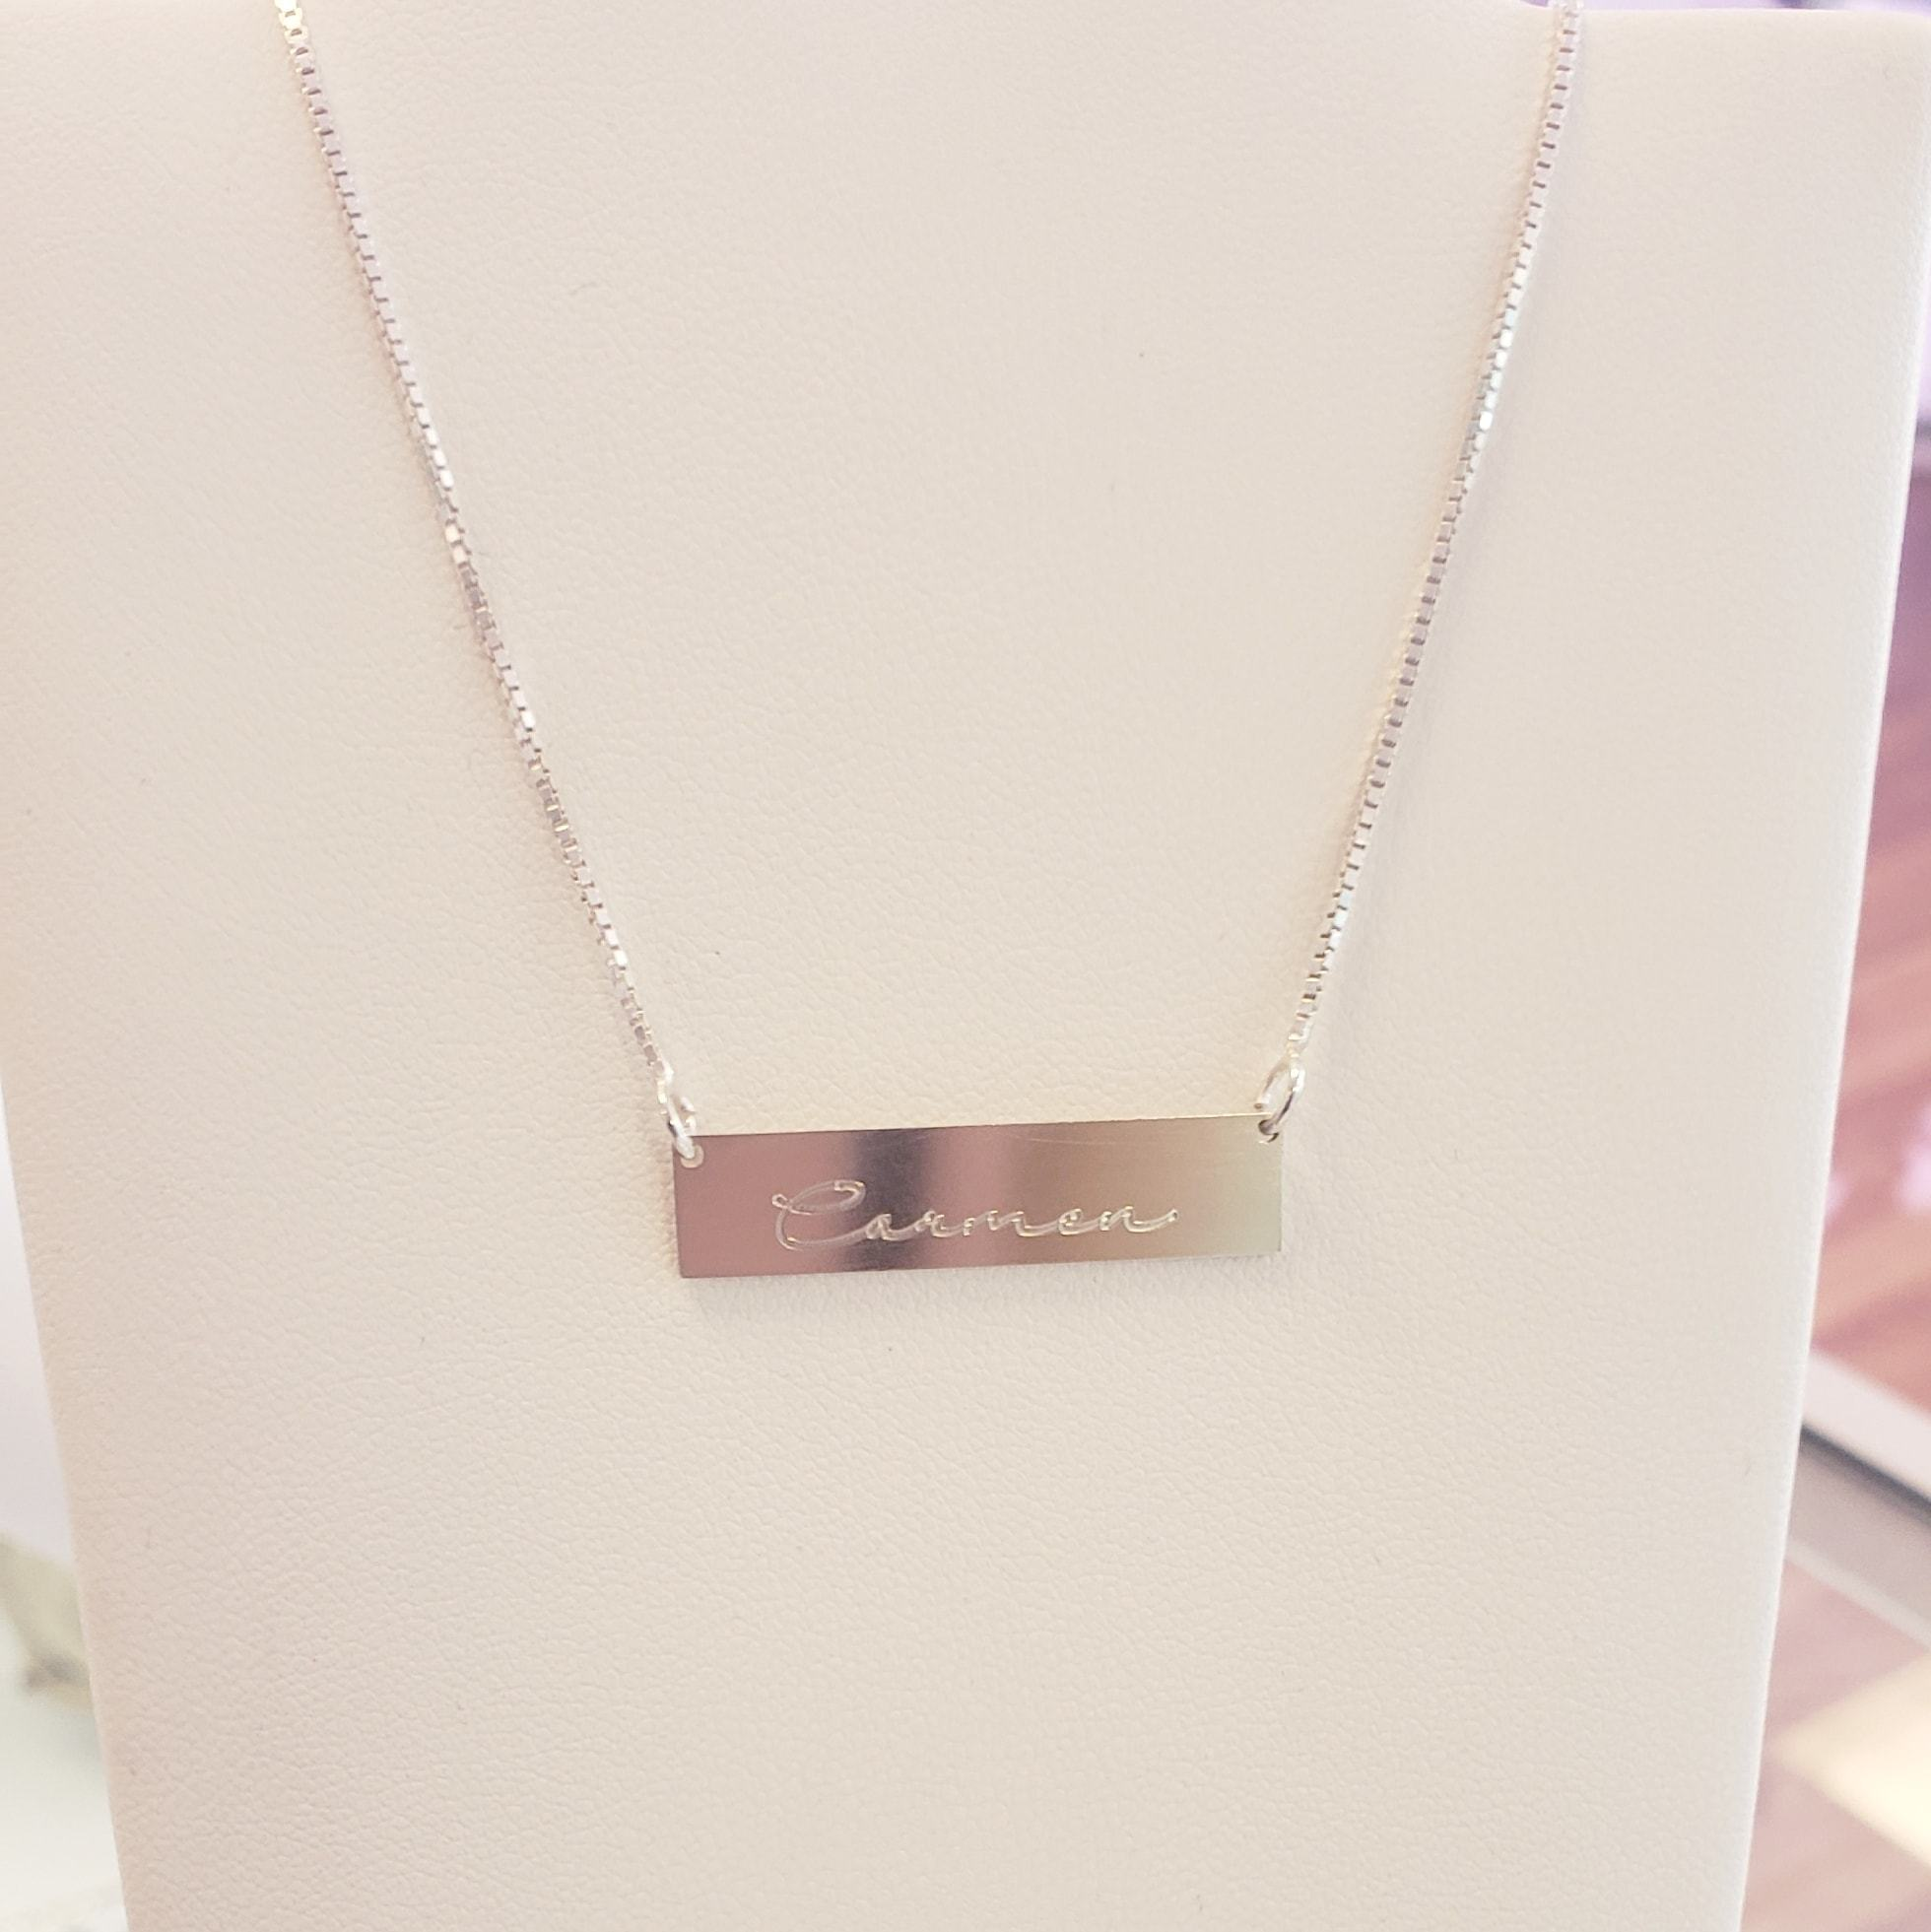 BSS01 - Sterling Silver Dainty Bar Necklace